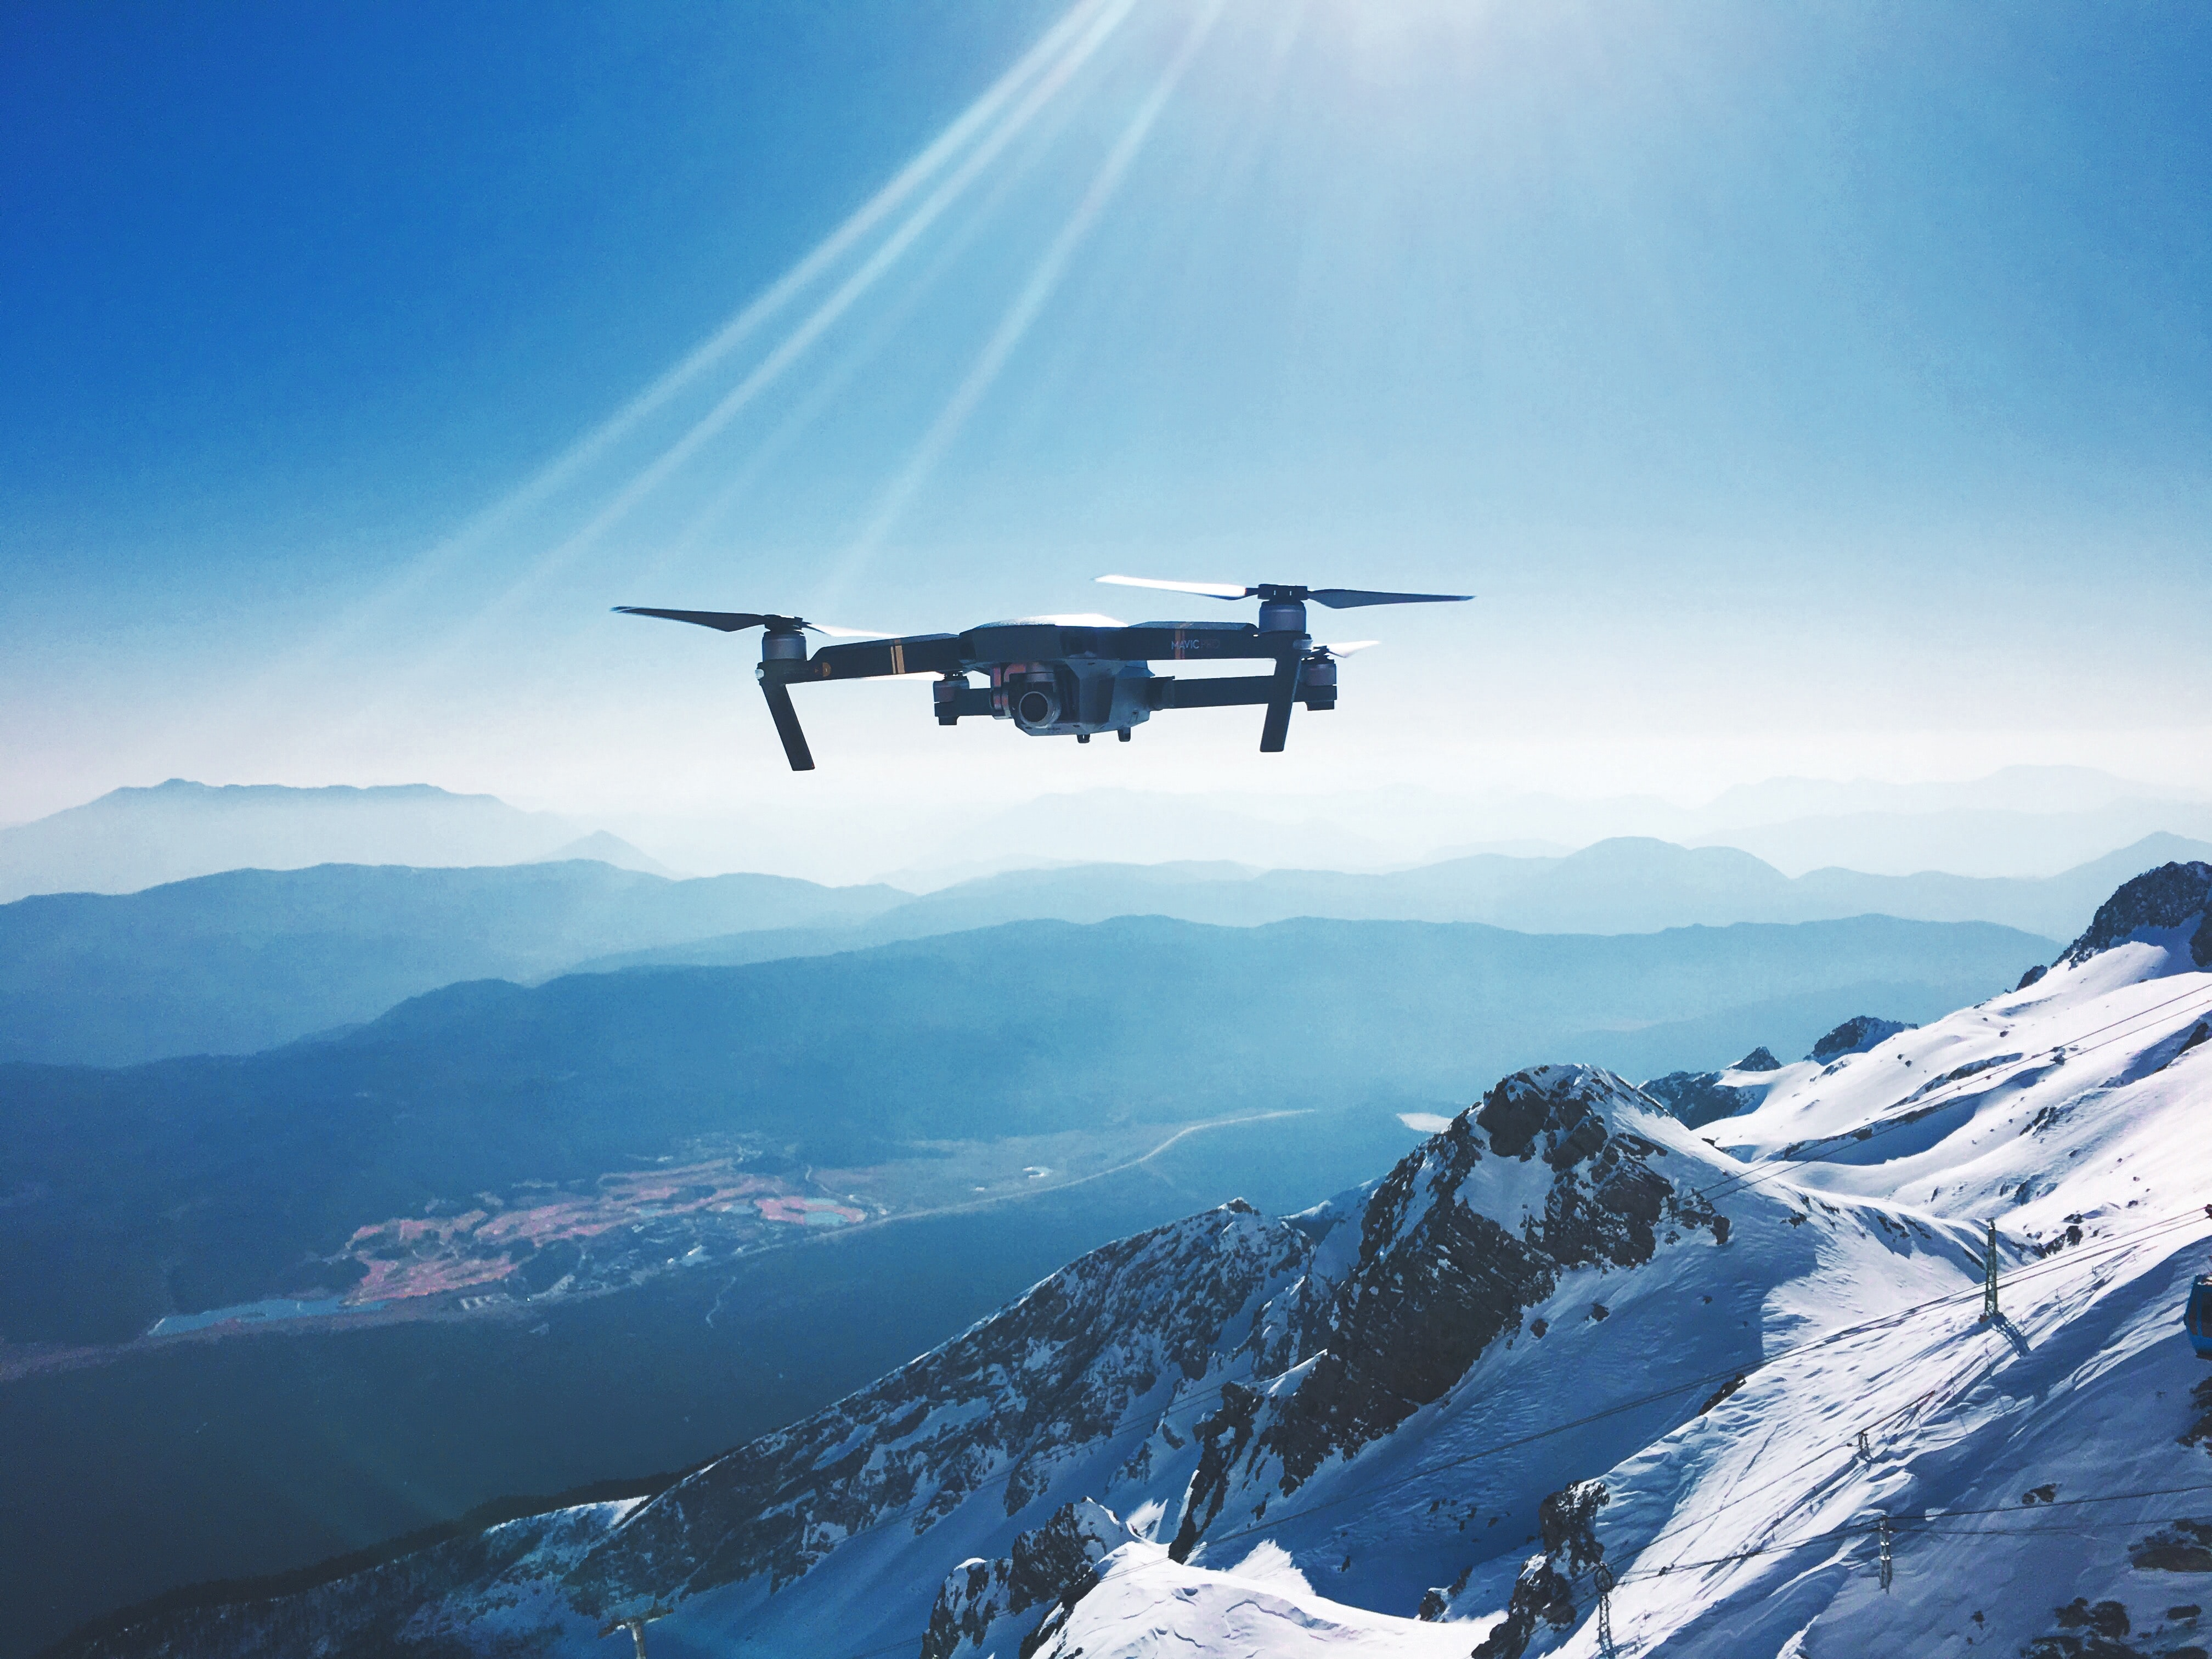 drone pictures download free images on unsplash